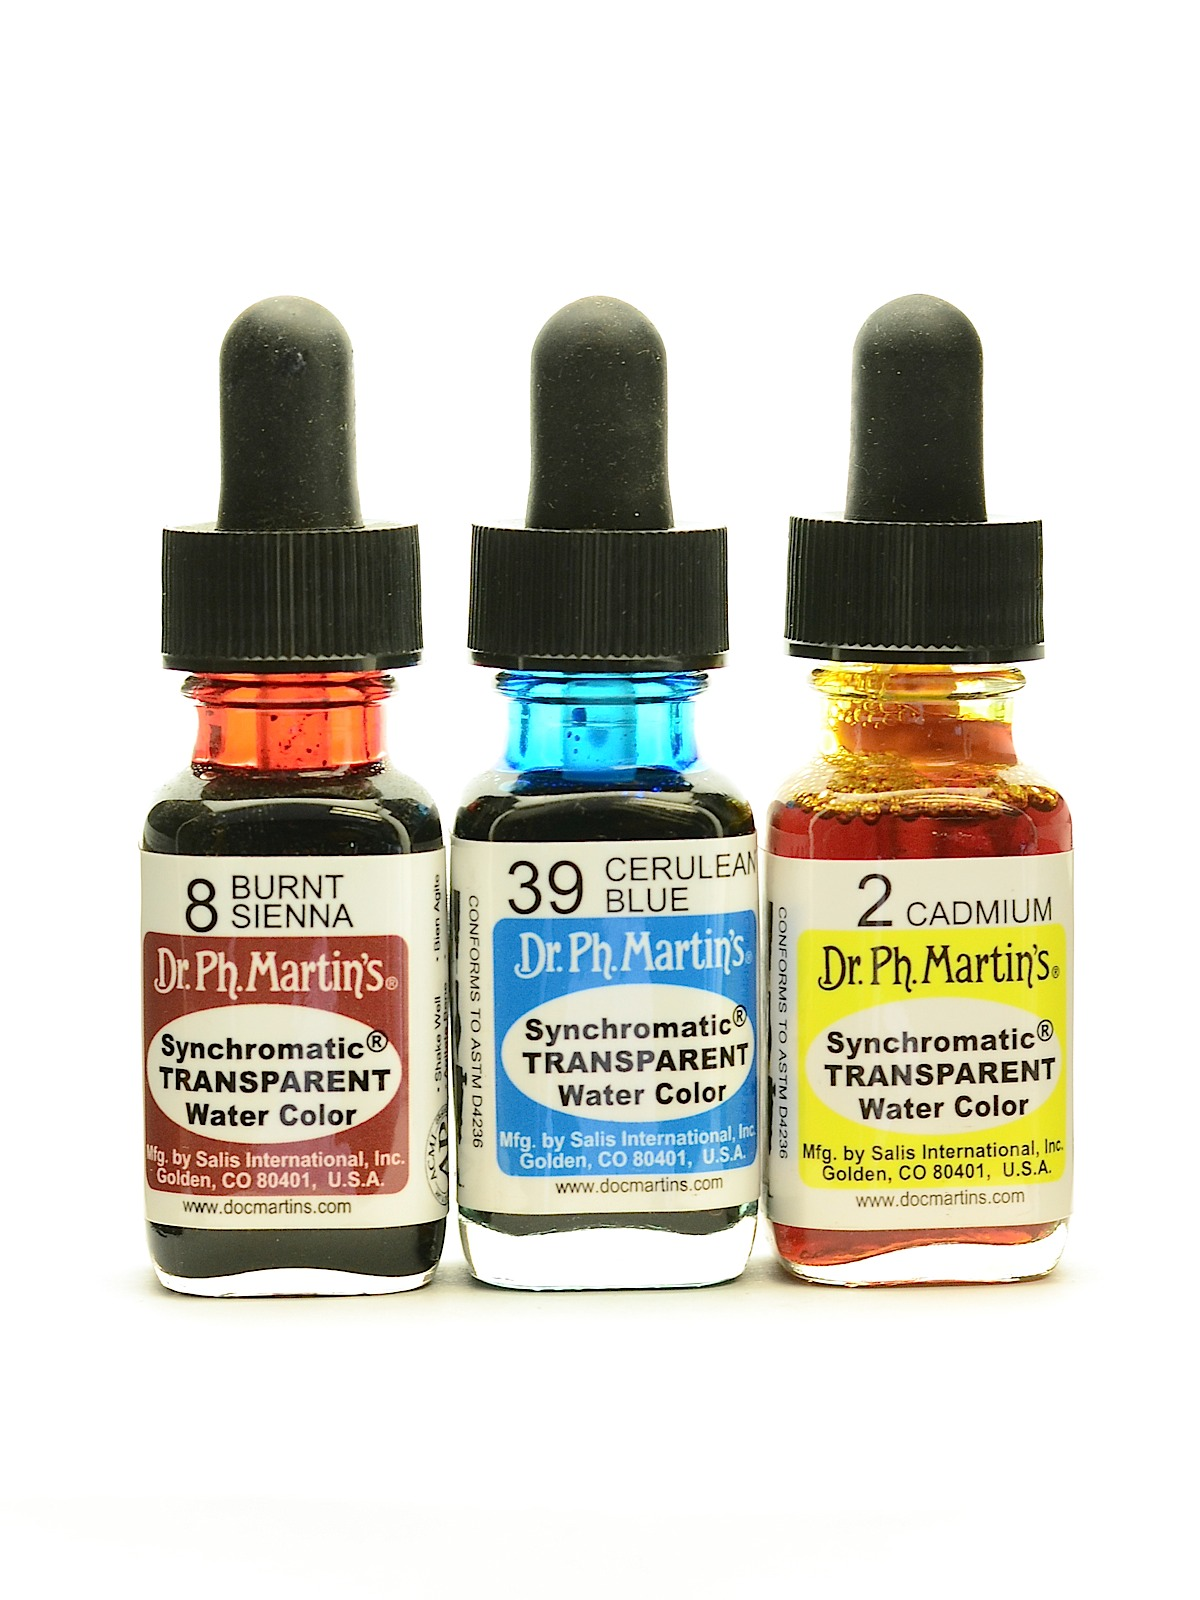 Synchromatic Transparent Watercolors 1/2 oz.